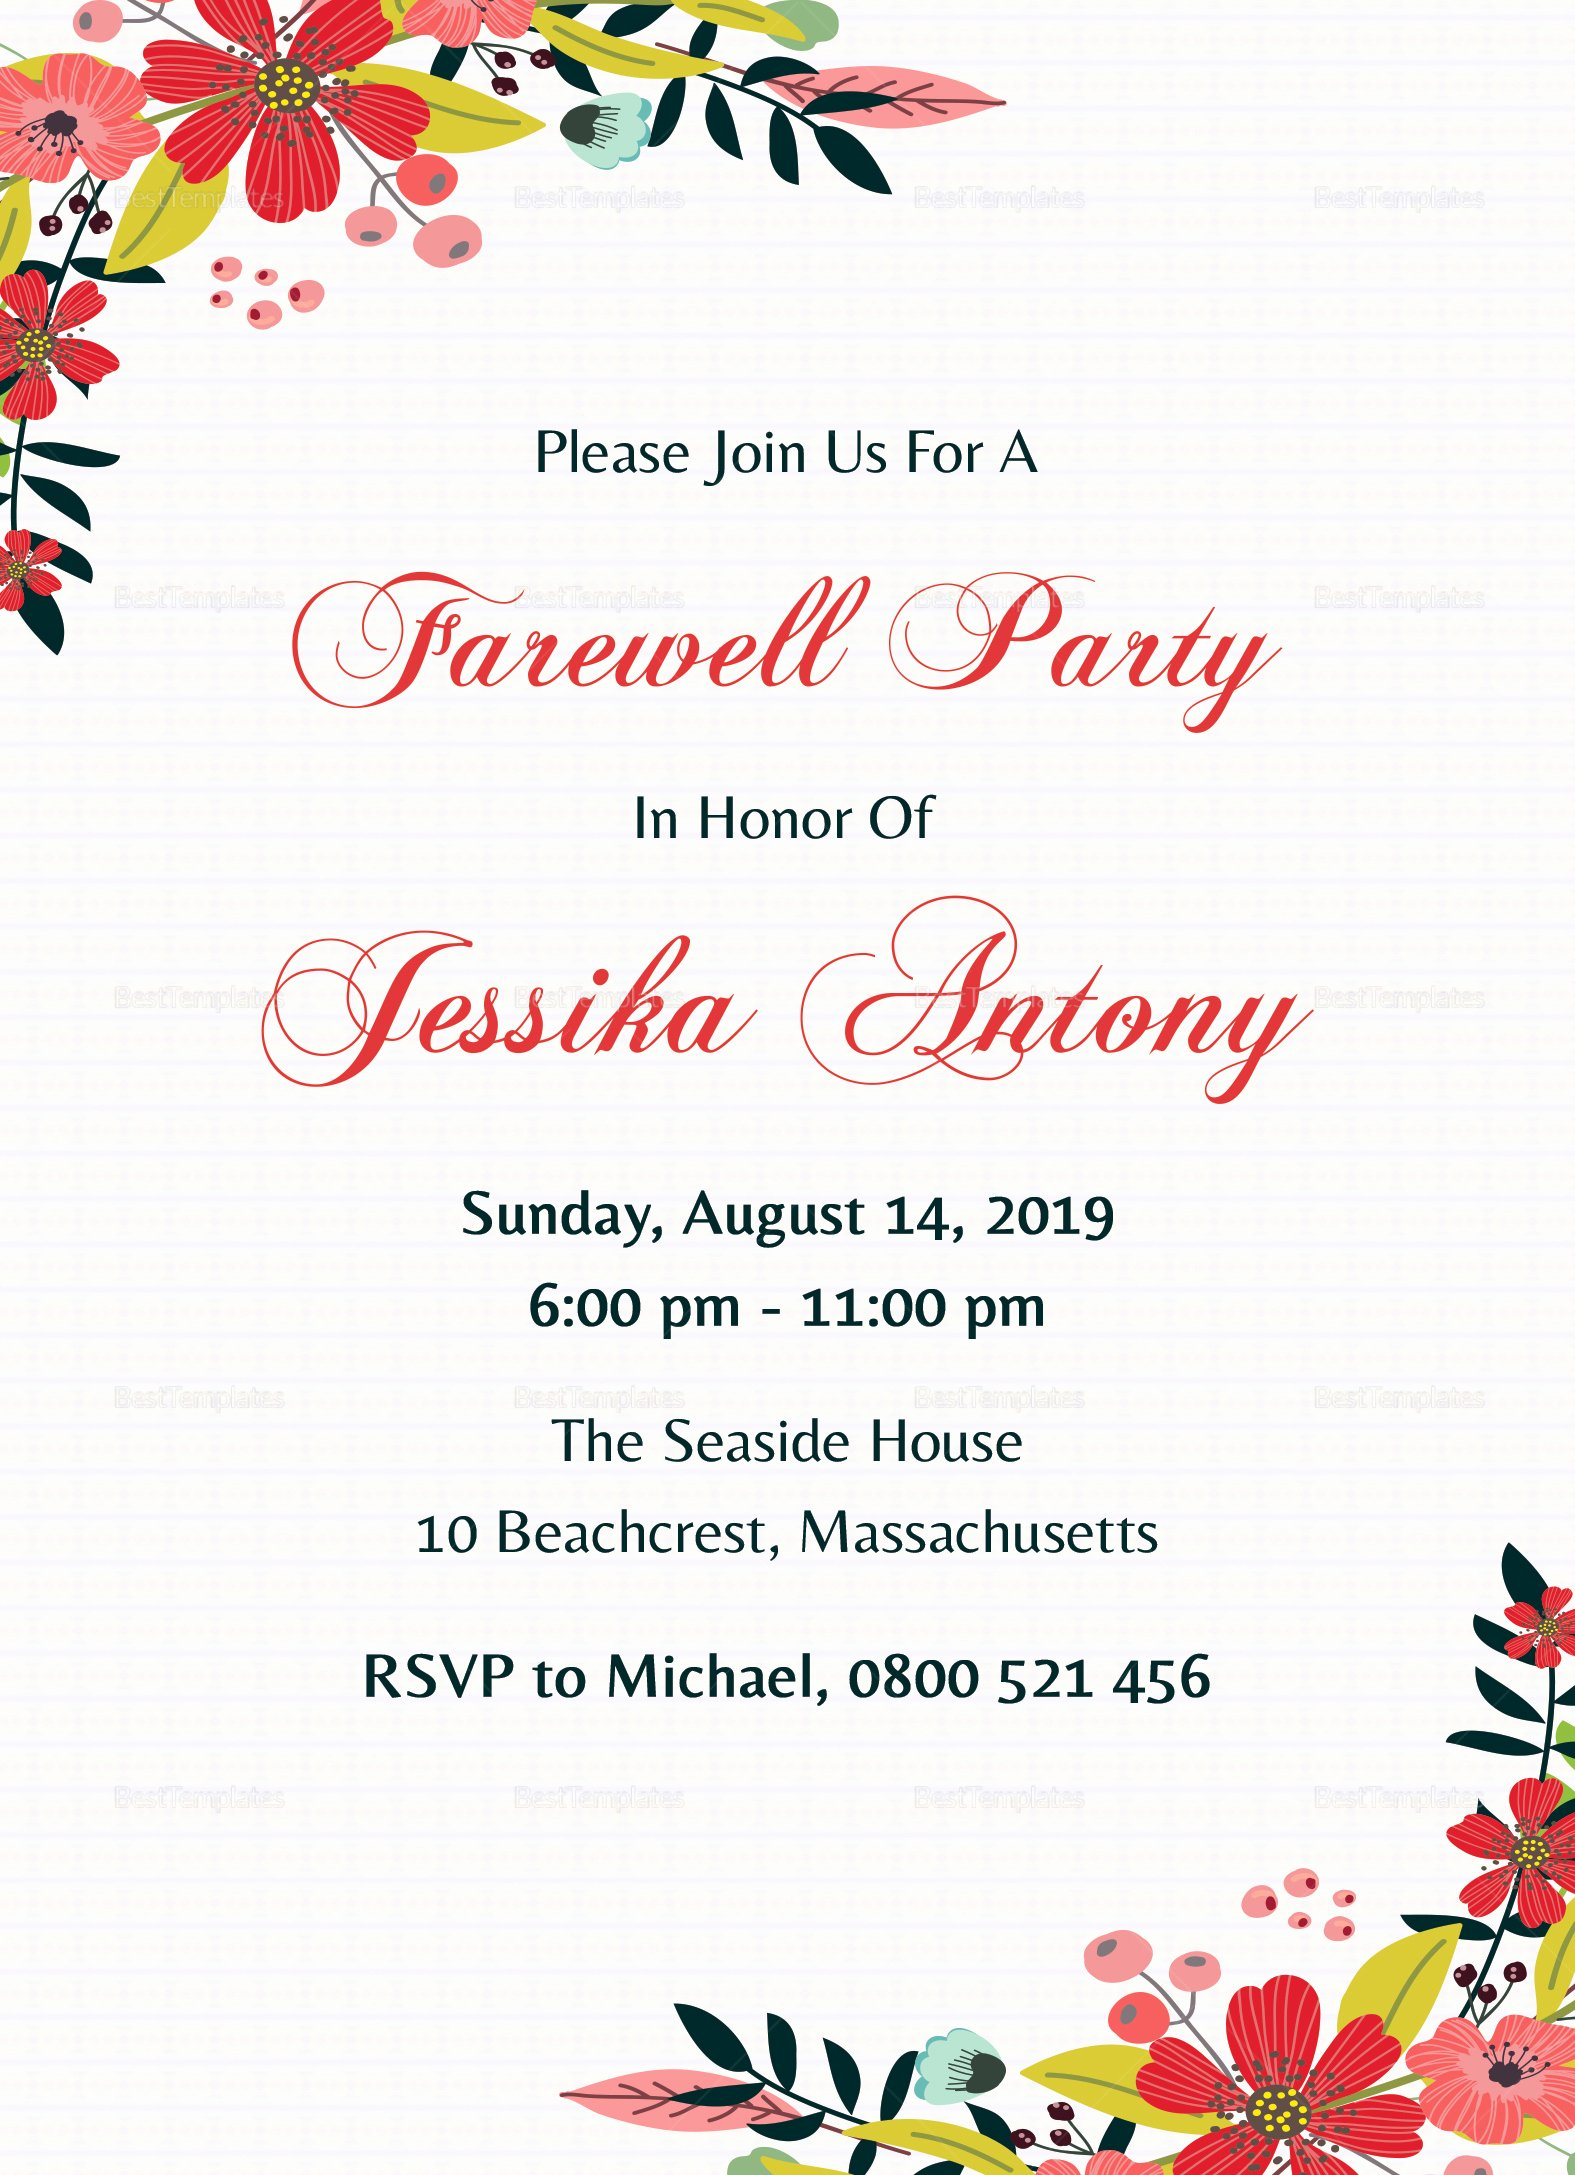 Farewell Party Invitations Templates Inspirational Classic Farewell Party Invitation Design Template In Word